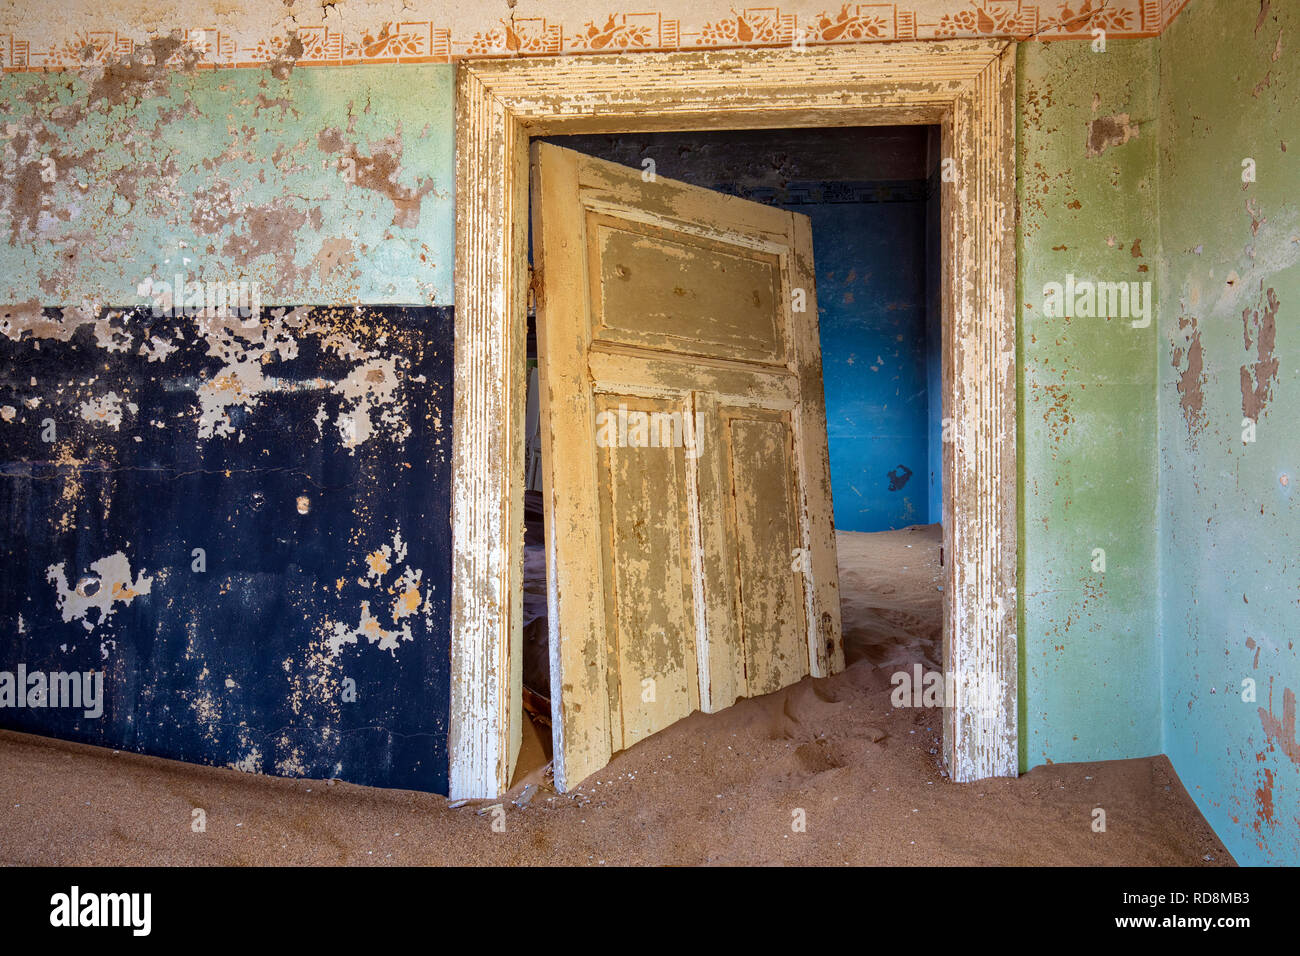 Colorful doorway in Kolmanskop Ghost Town - Luderitz, Namibia, Africa - Stock Image